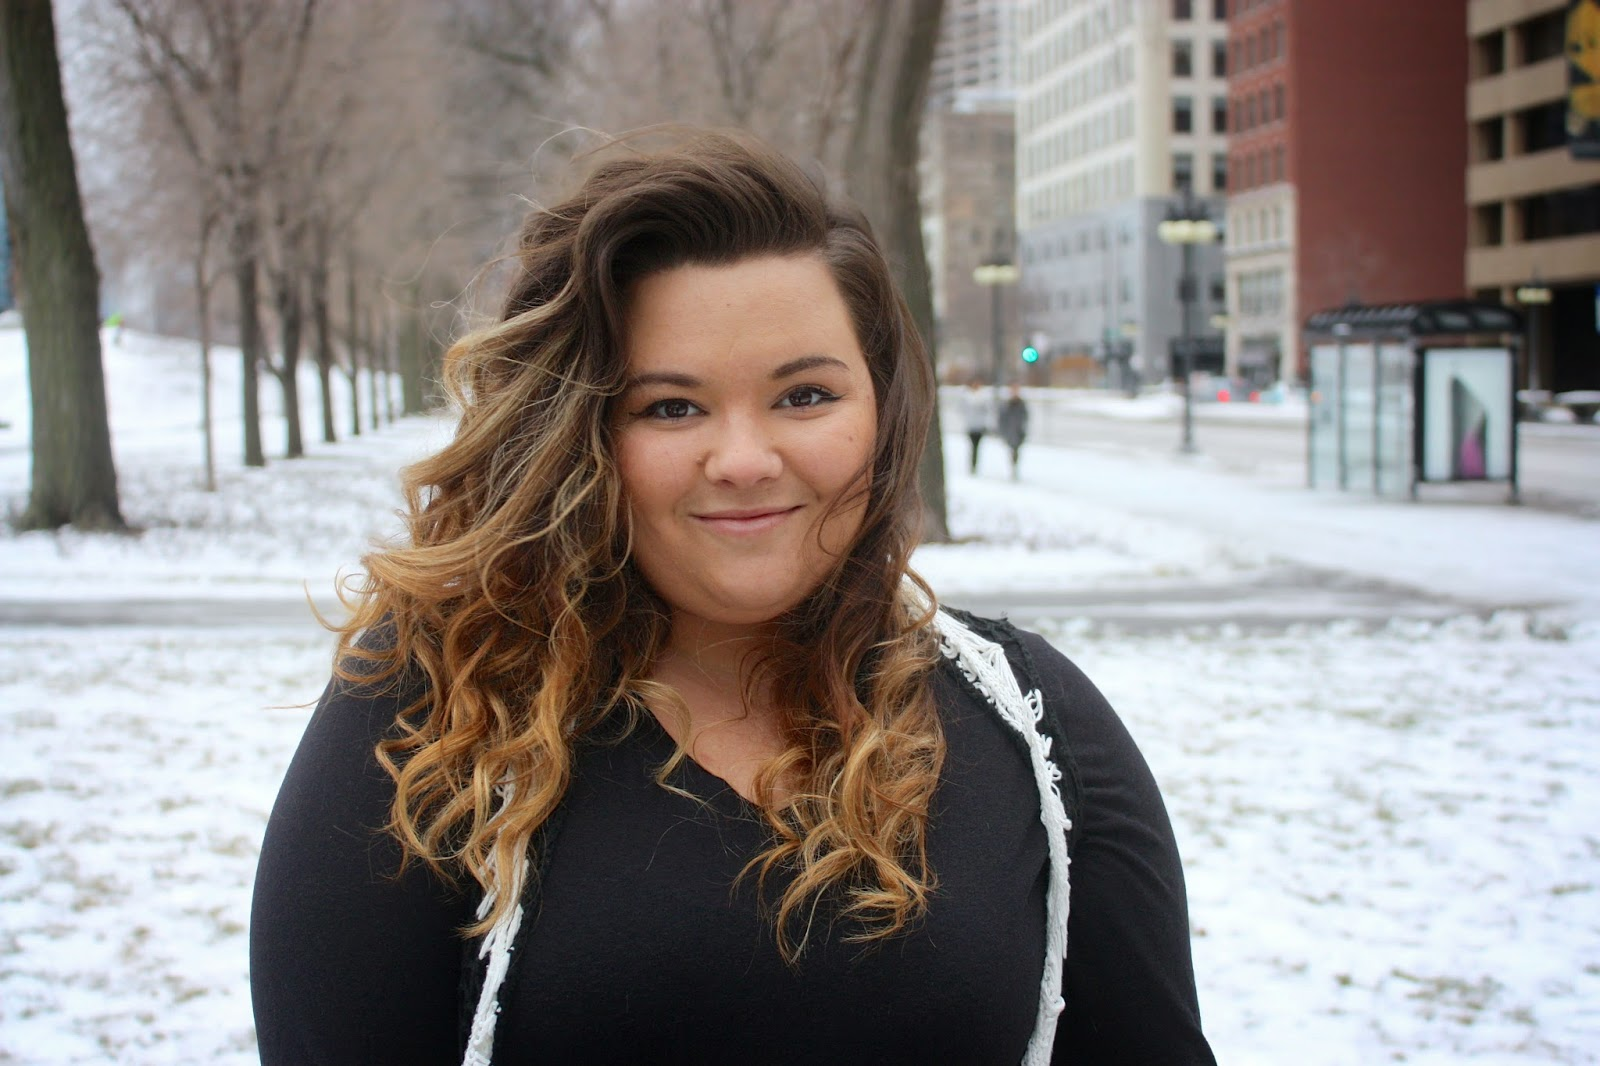 Natalie Craig, Natalie in The City, chicago, ootd, plus size fashion, fashion blogger, crochet vest, winter fashion 2015, mom fashion, curvy women, fatshion, gray jeans, curly ombre hair, thick girls, grant park, ralph lauren, lauren, wide calf boots, how to dress up a long sleeve shirt